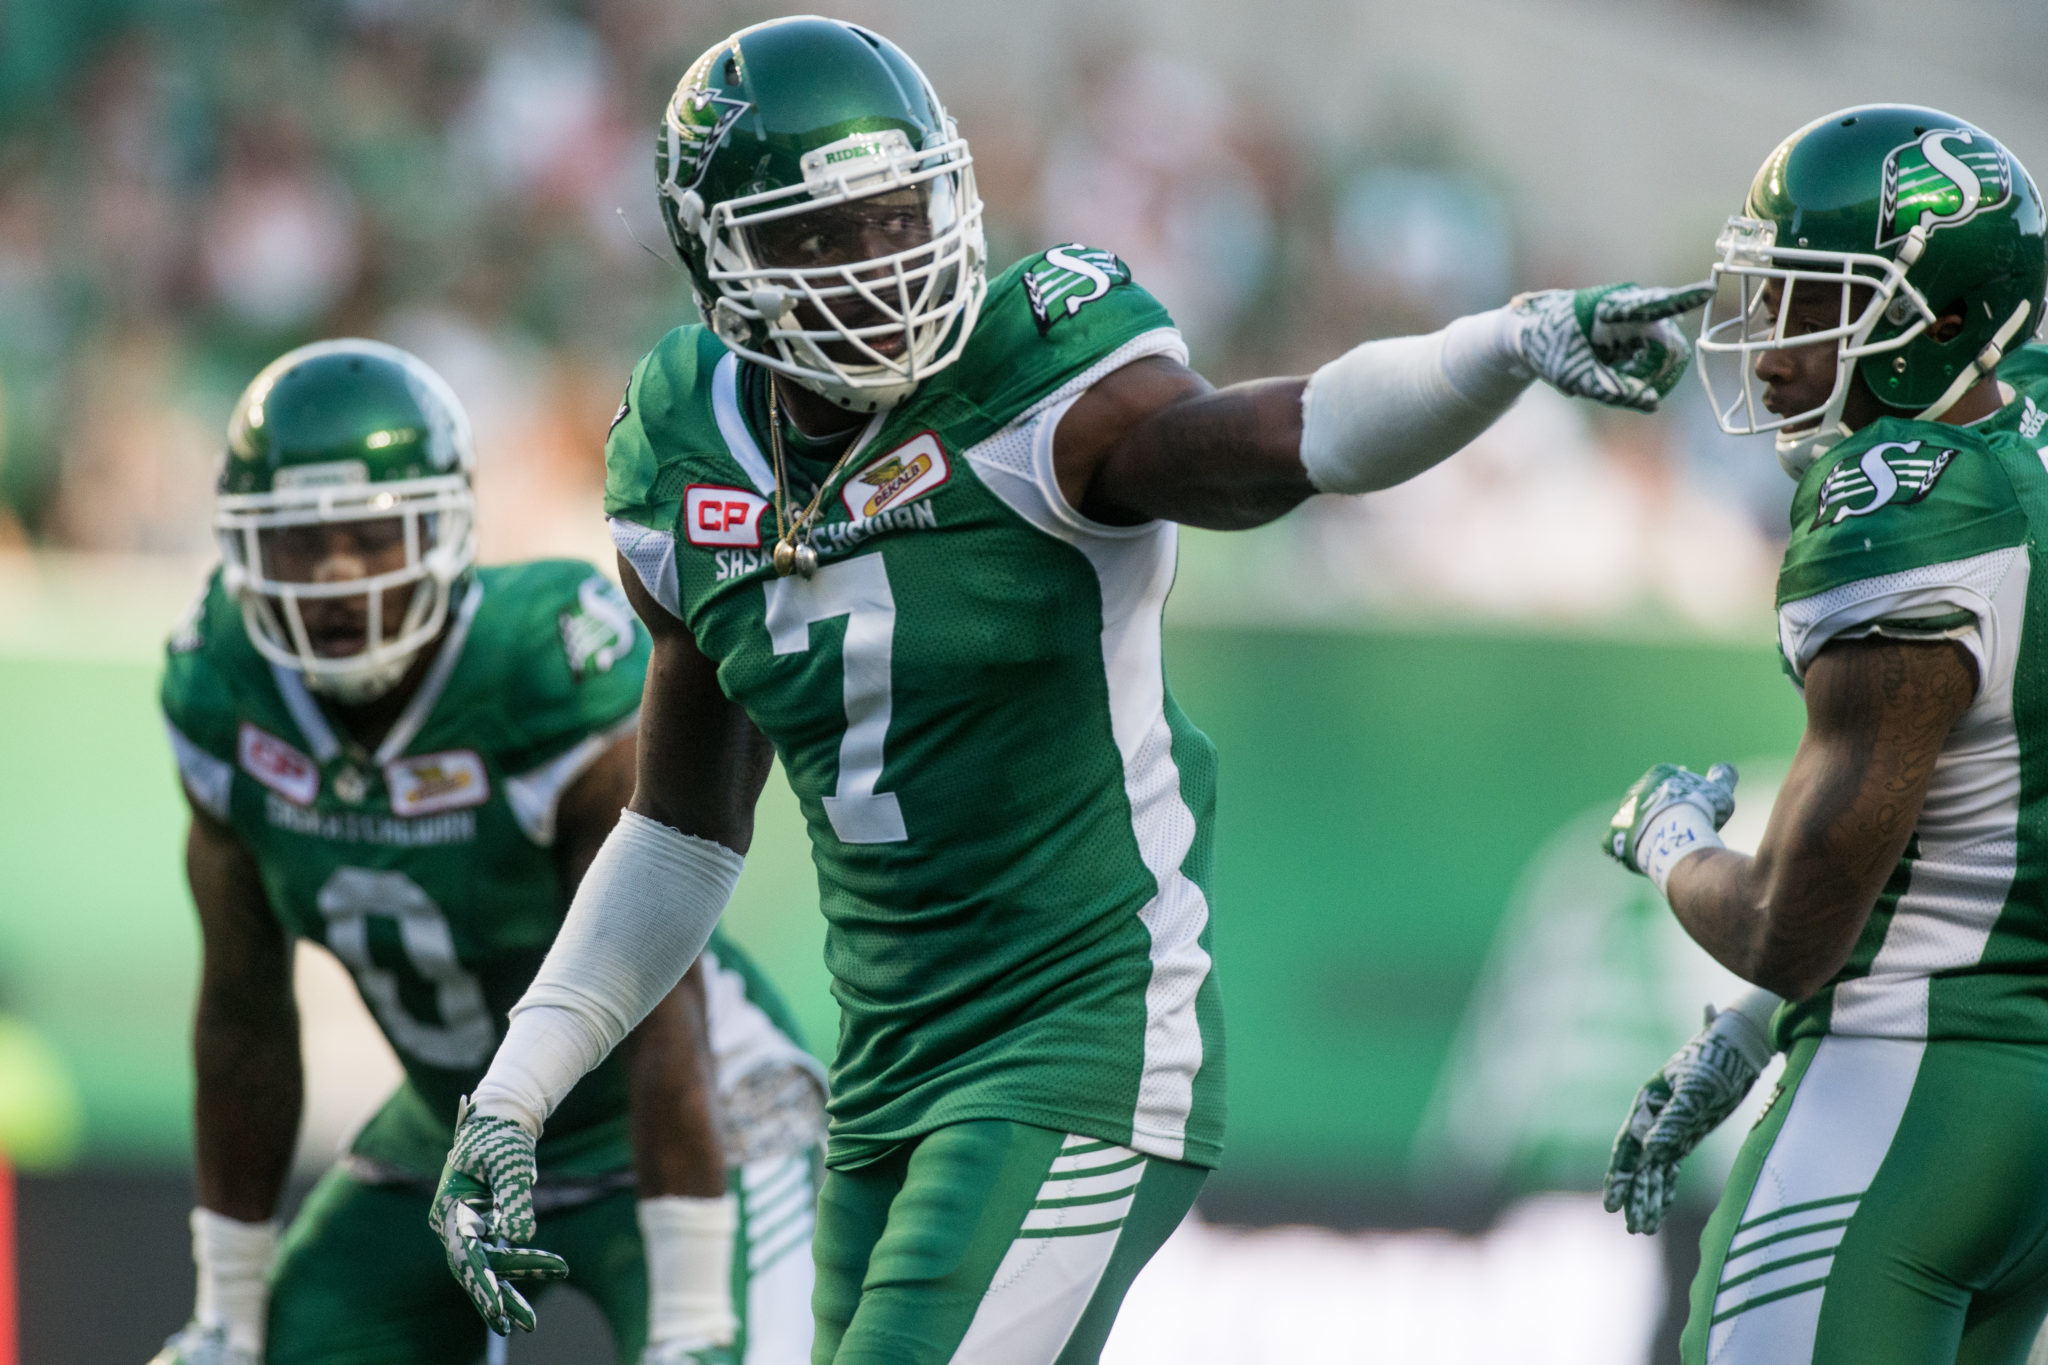 Getting pressure is the name of the game - Saskatchewan